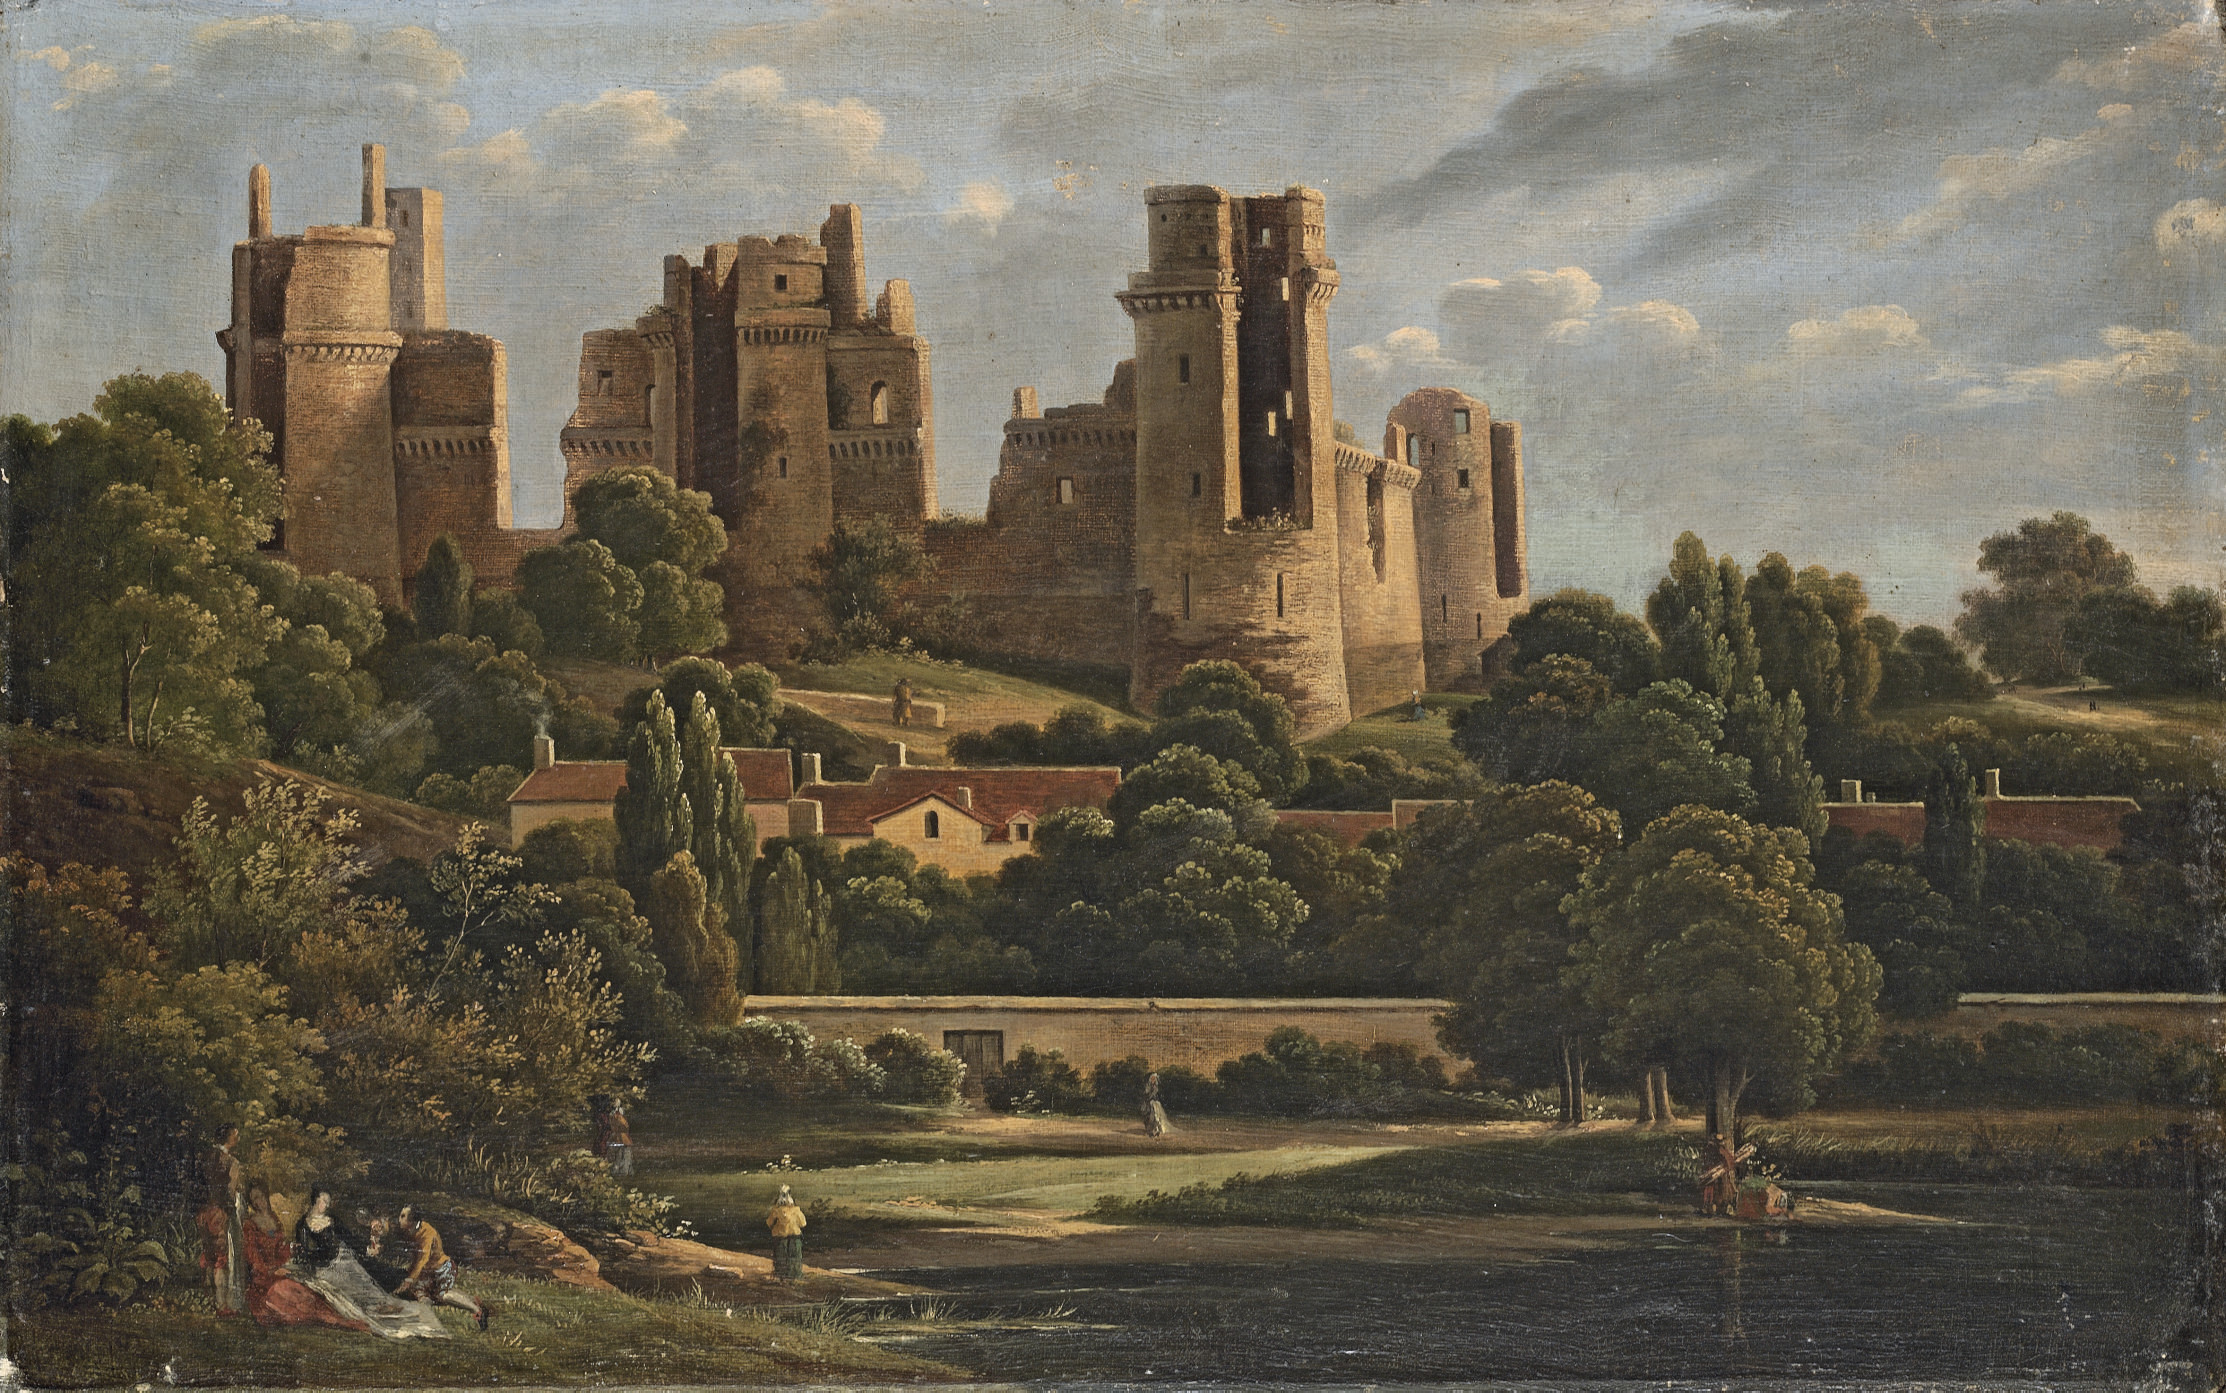 A view of the castle of Pierrefonds, in ruins, with figures by a river